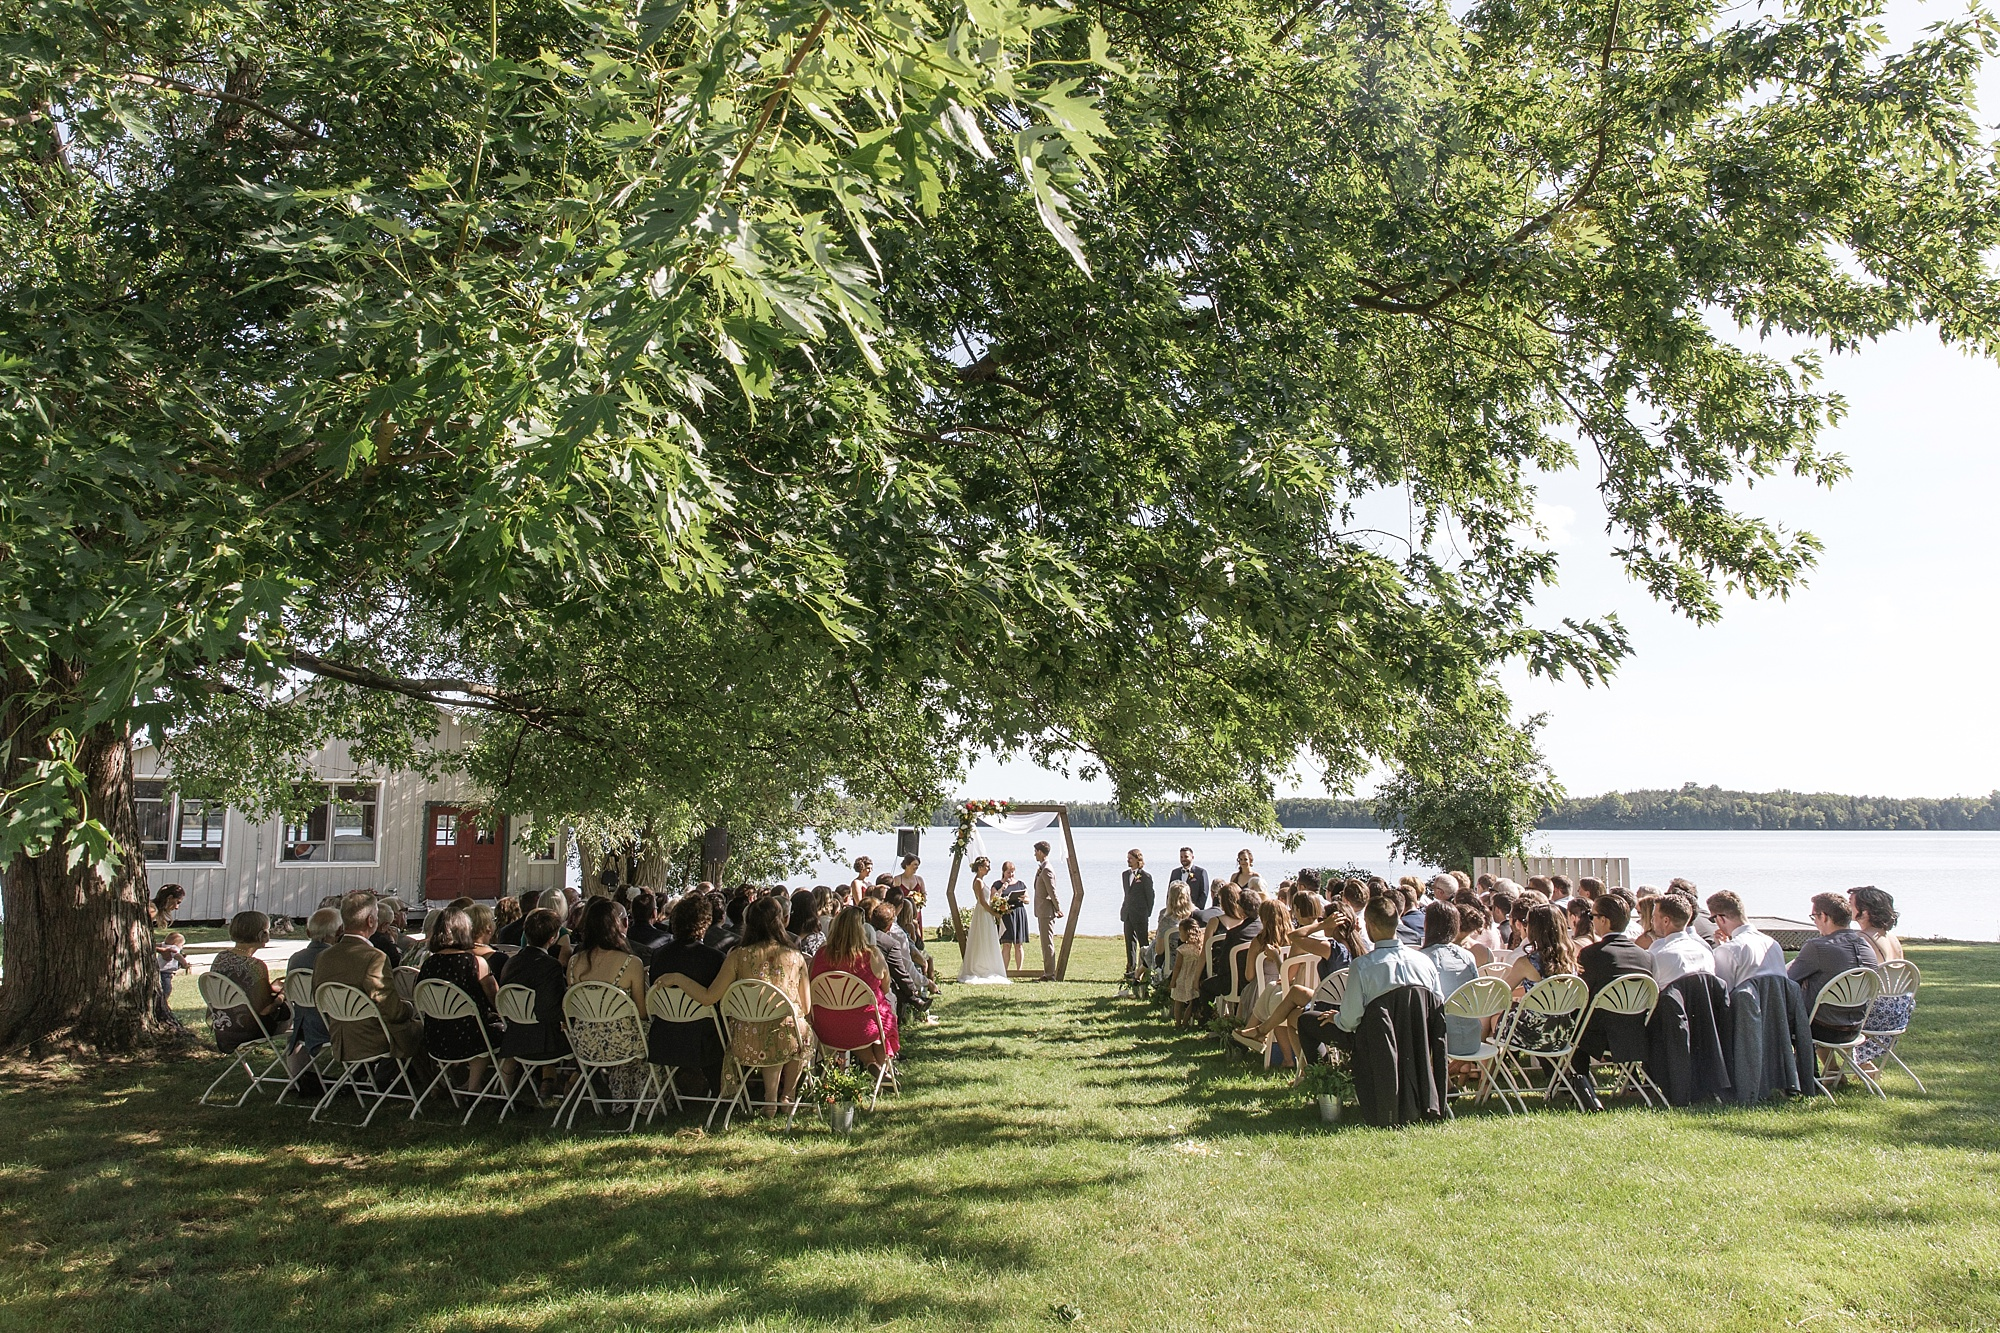 princeedwardcounty-wedding-photpgraphy_0046.jpg